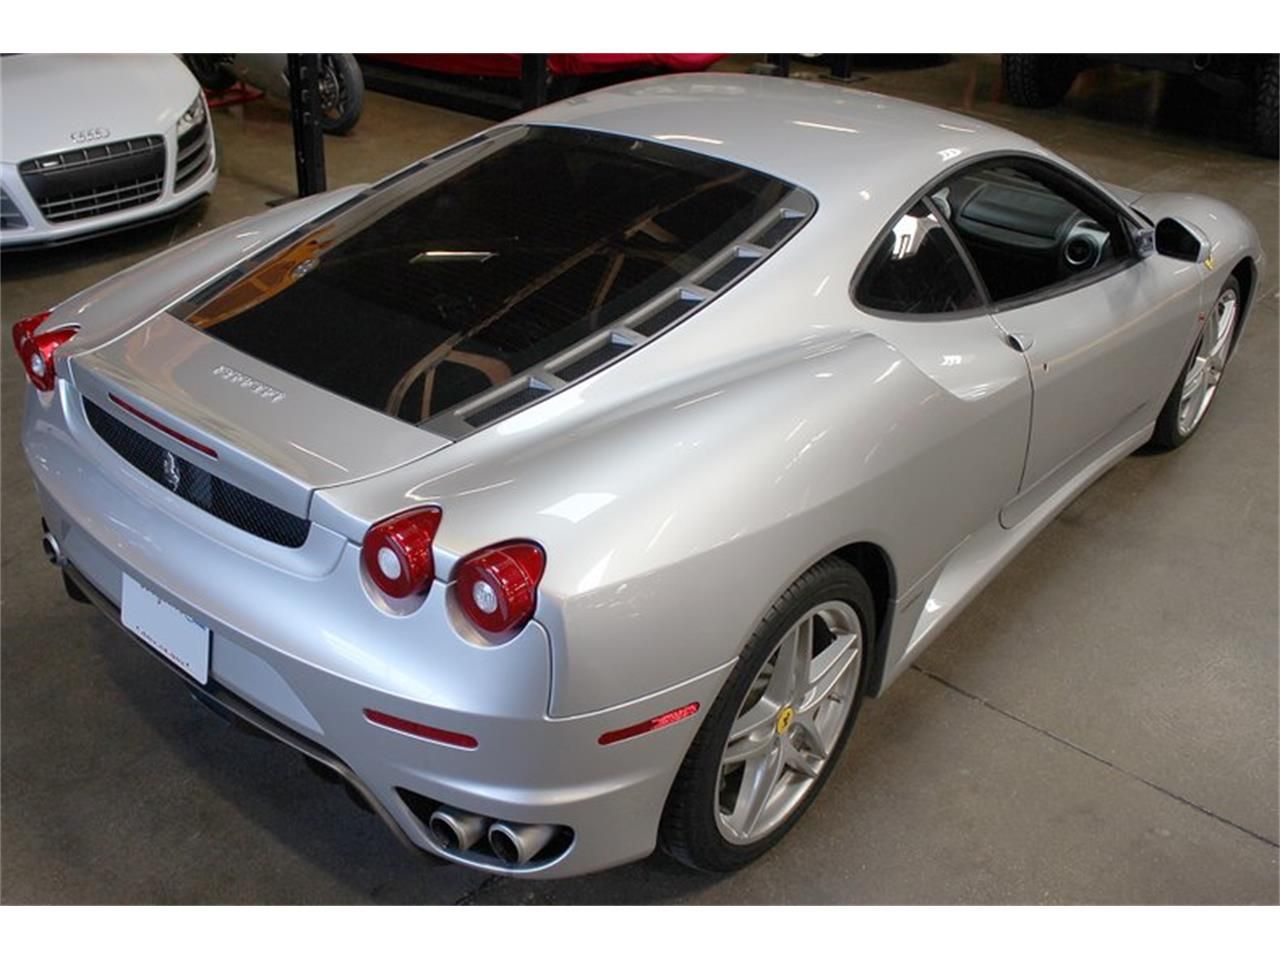 2005 Ferrari F430 for sale in San Carlos, CA – photo 10